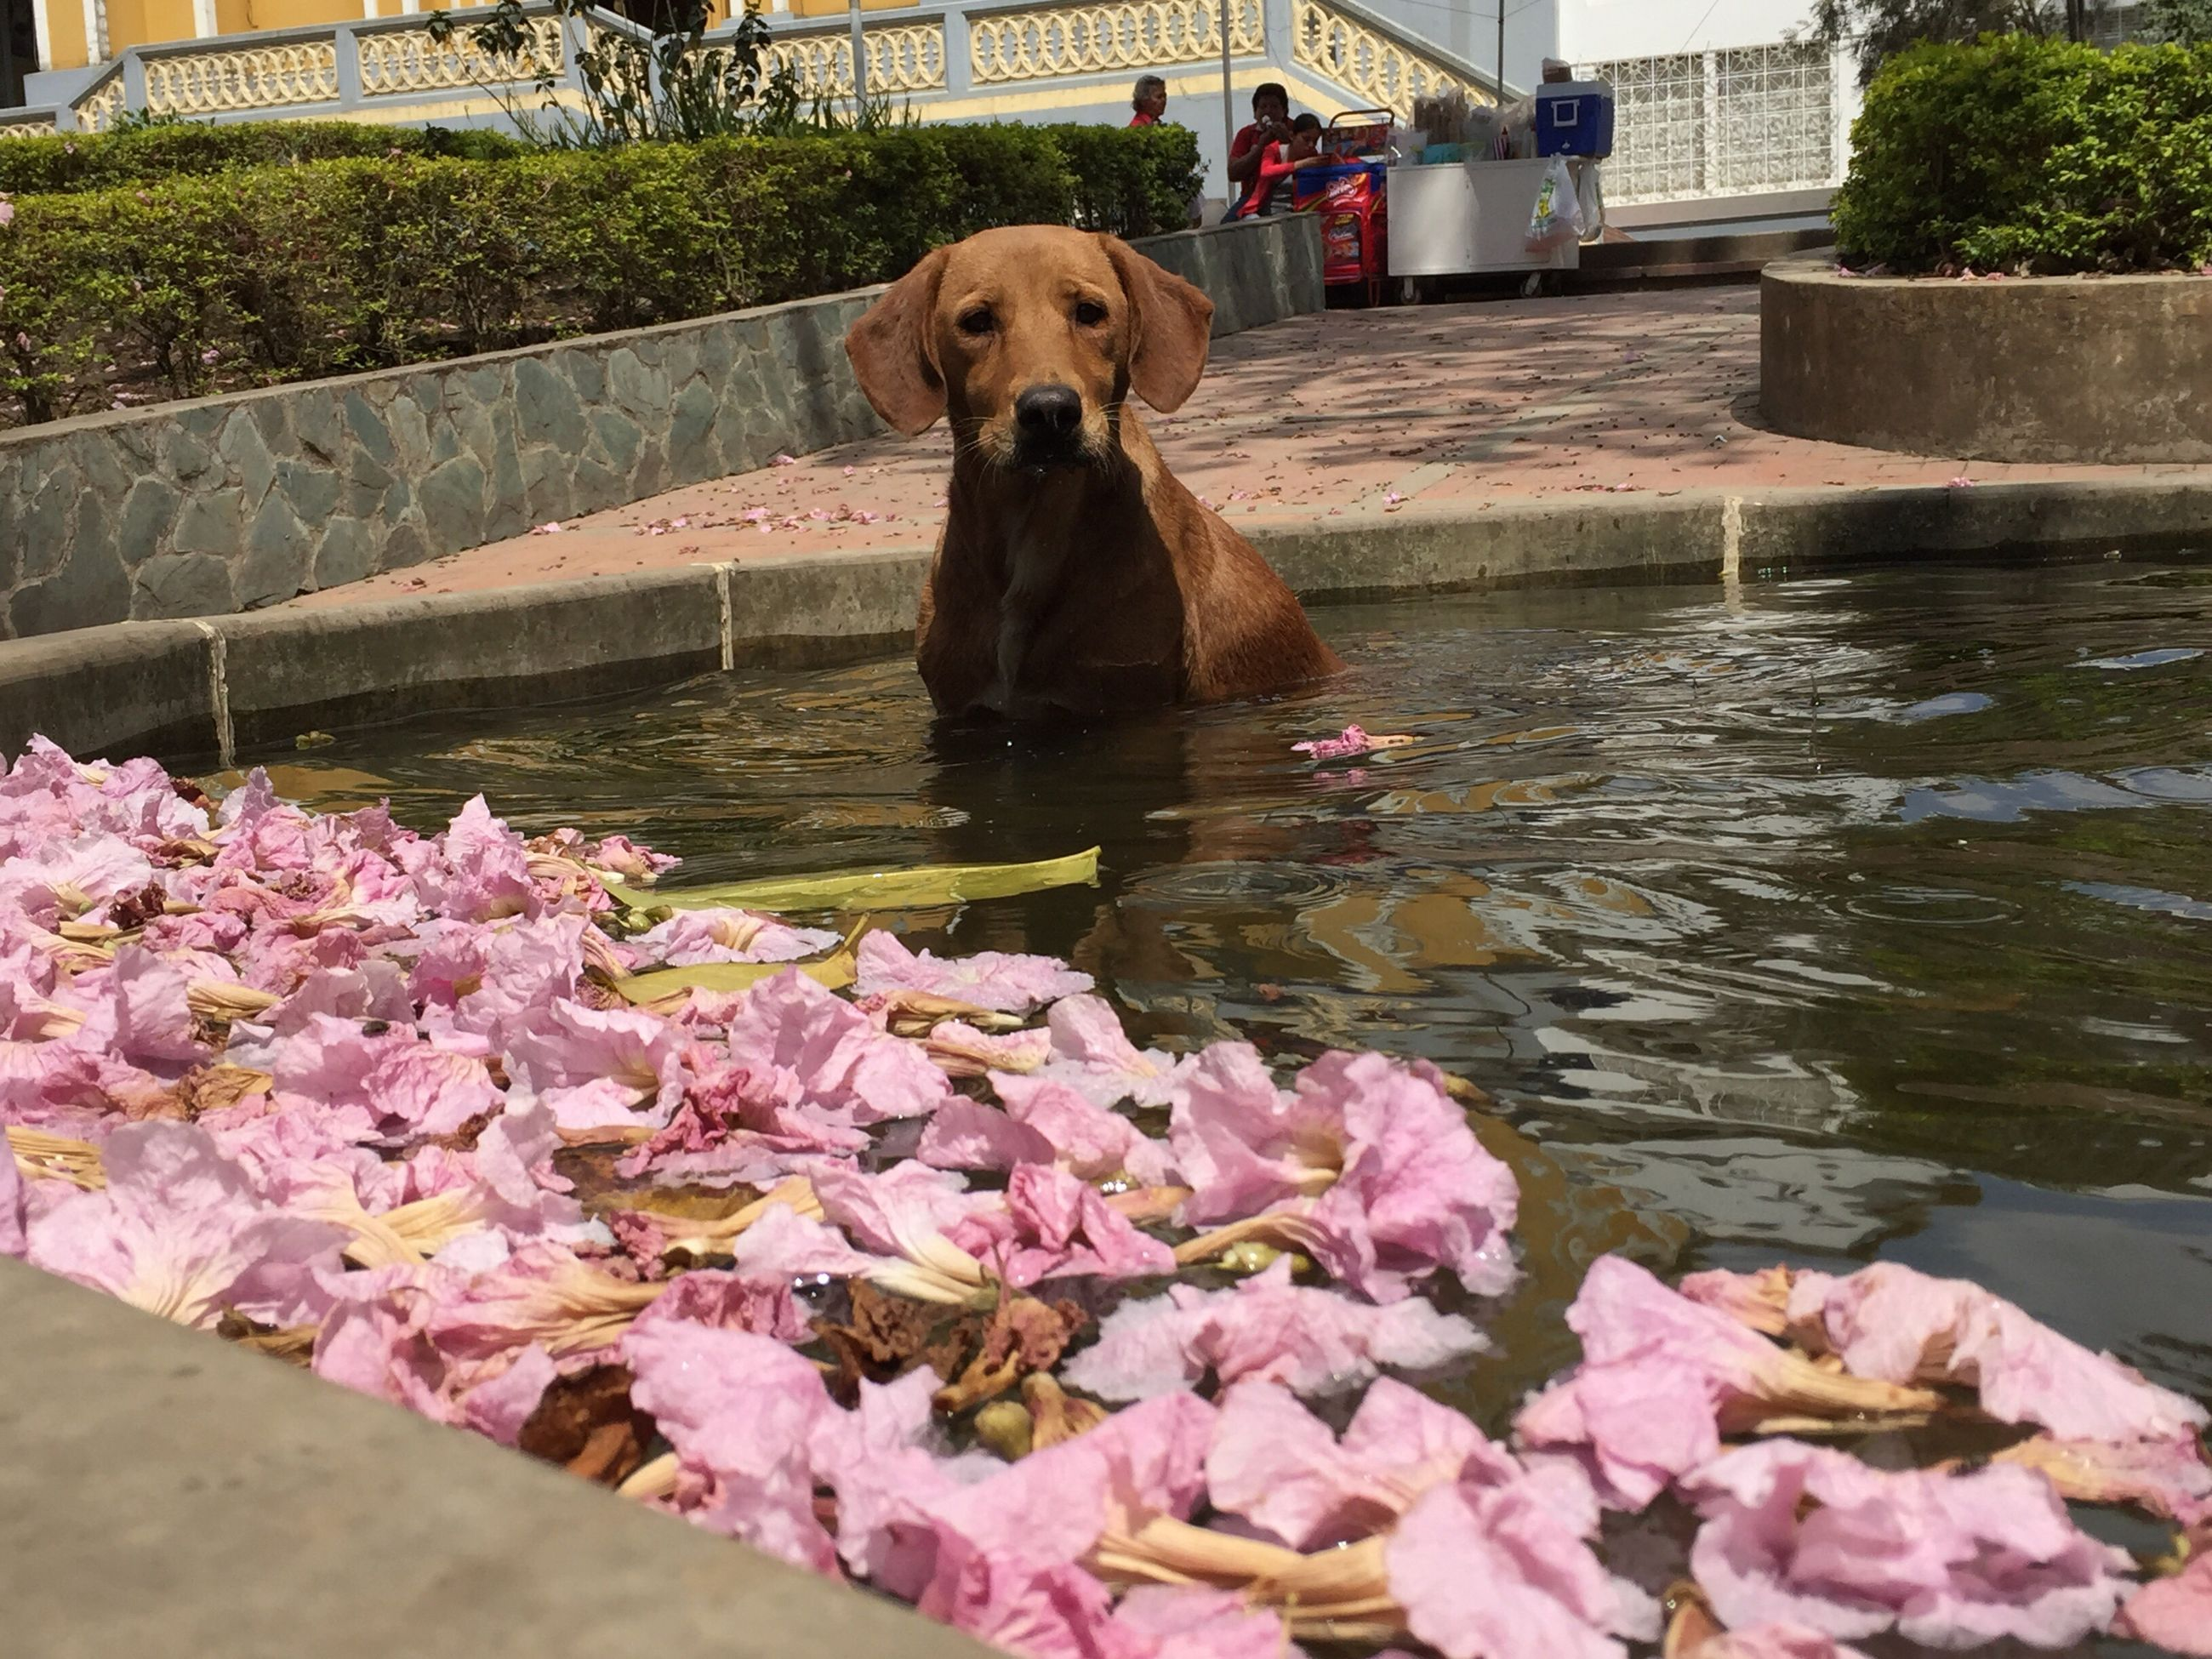 flower, dog, animal themes, pets, one animal, domestic animals, pink color, water, built structure, mammal, sitting, building exterior, full length, architecture, freshness, pond, outdoors, plant, day, nature